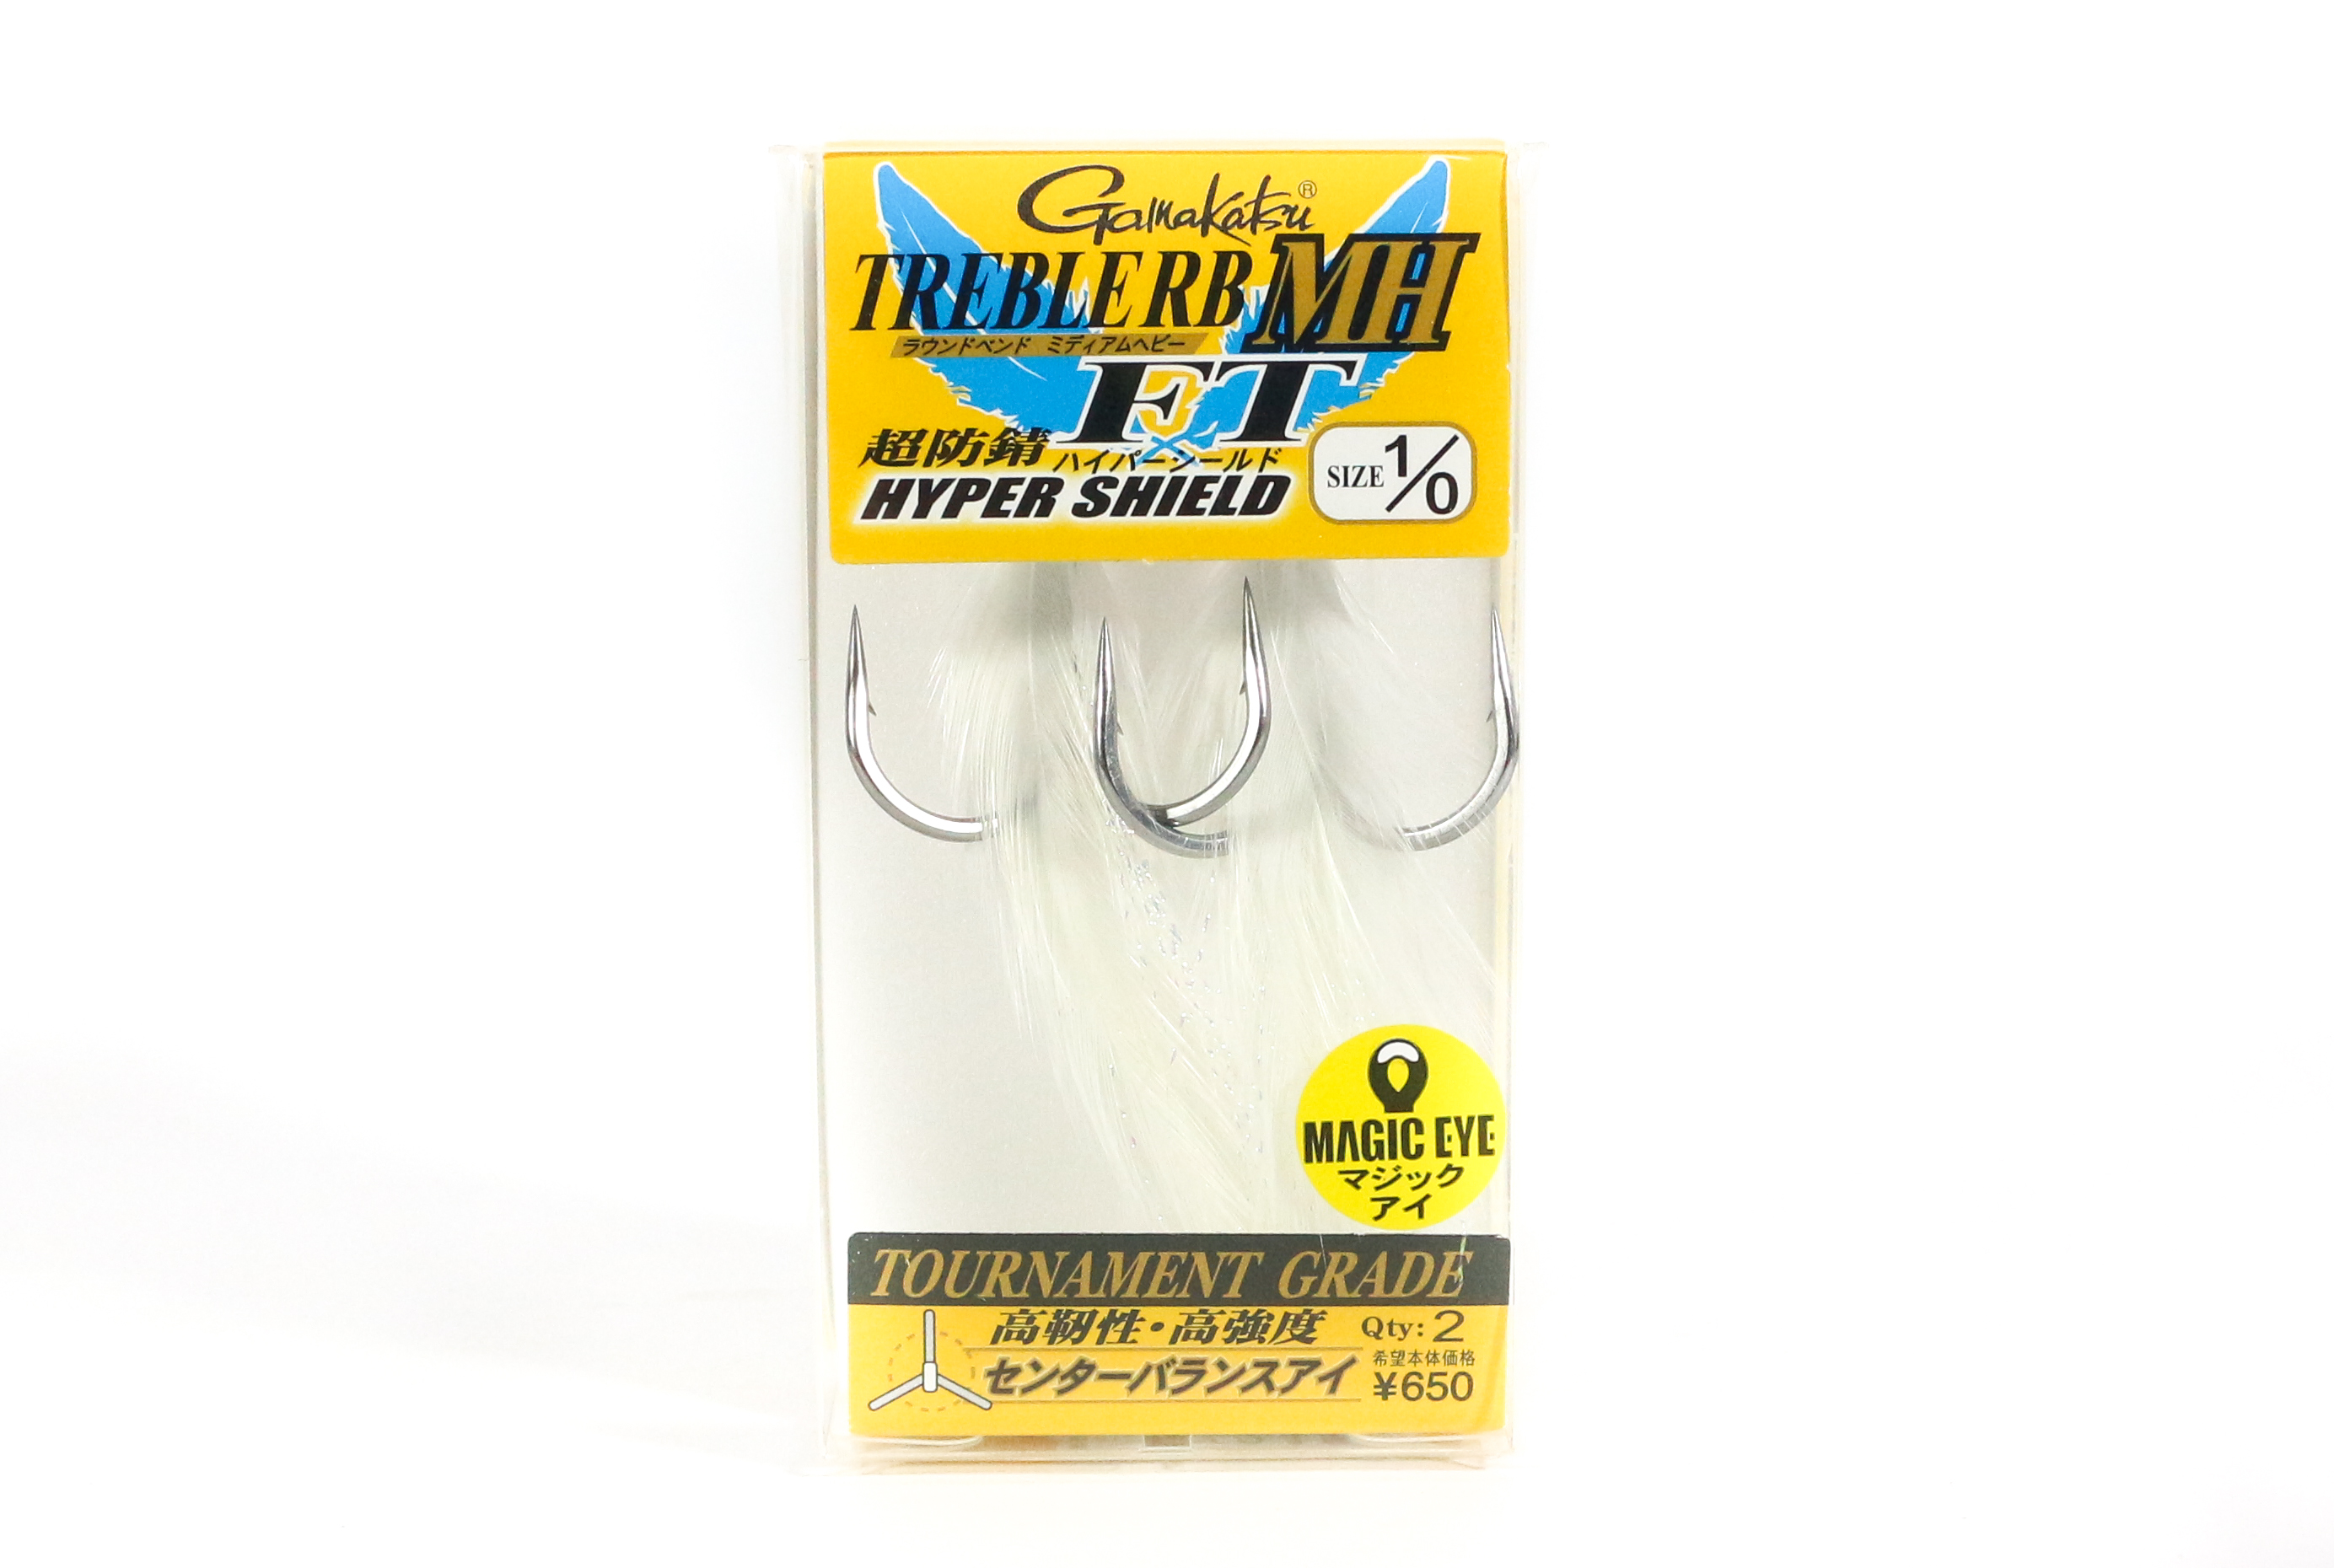 Gamakatsu Treble Hook RB MH FT Feather Hyper Shield Size 1/0 (7125)